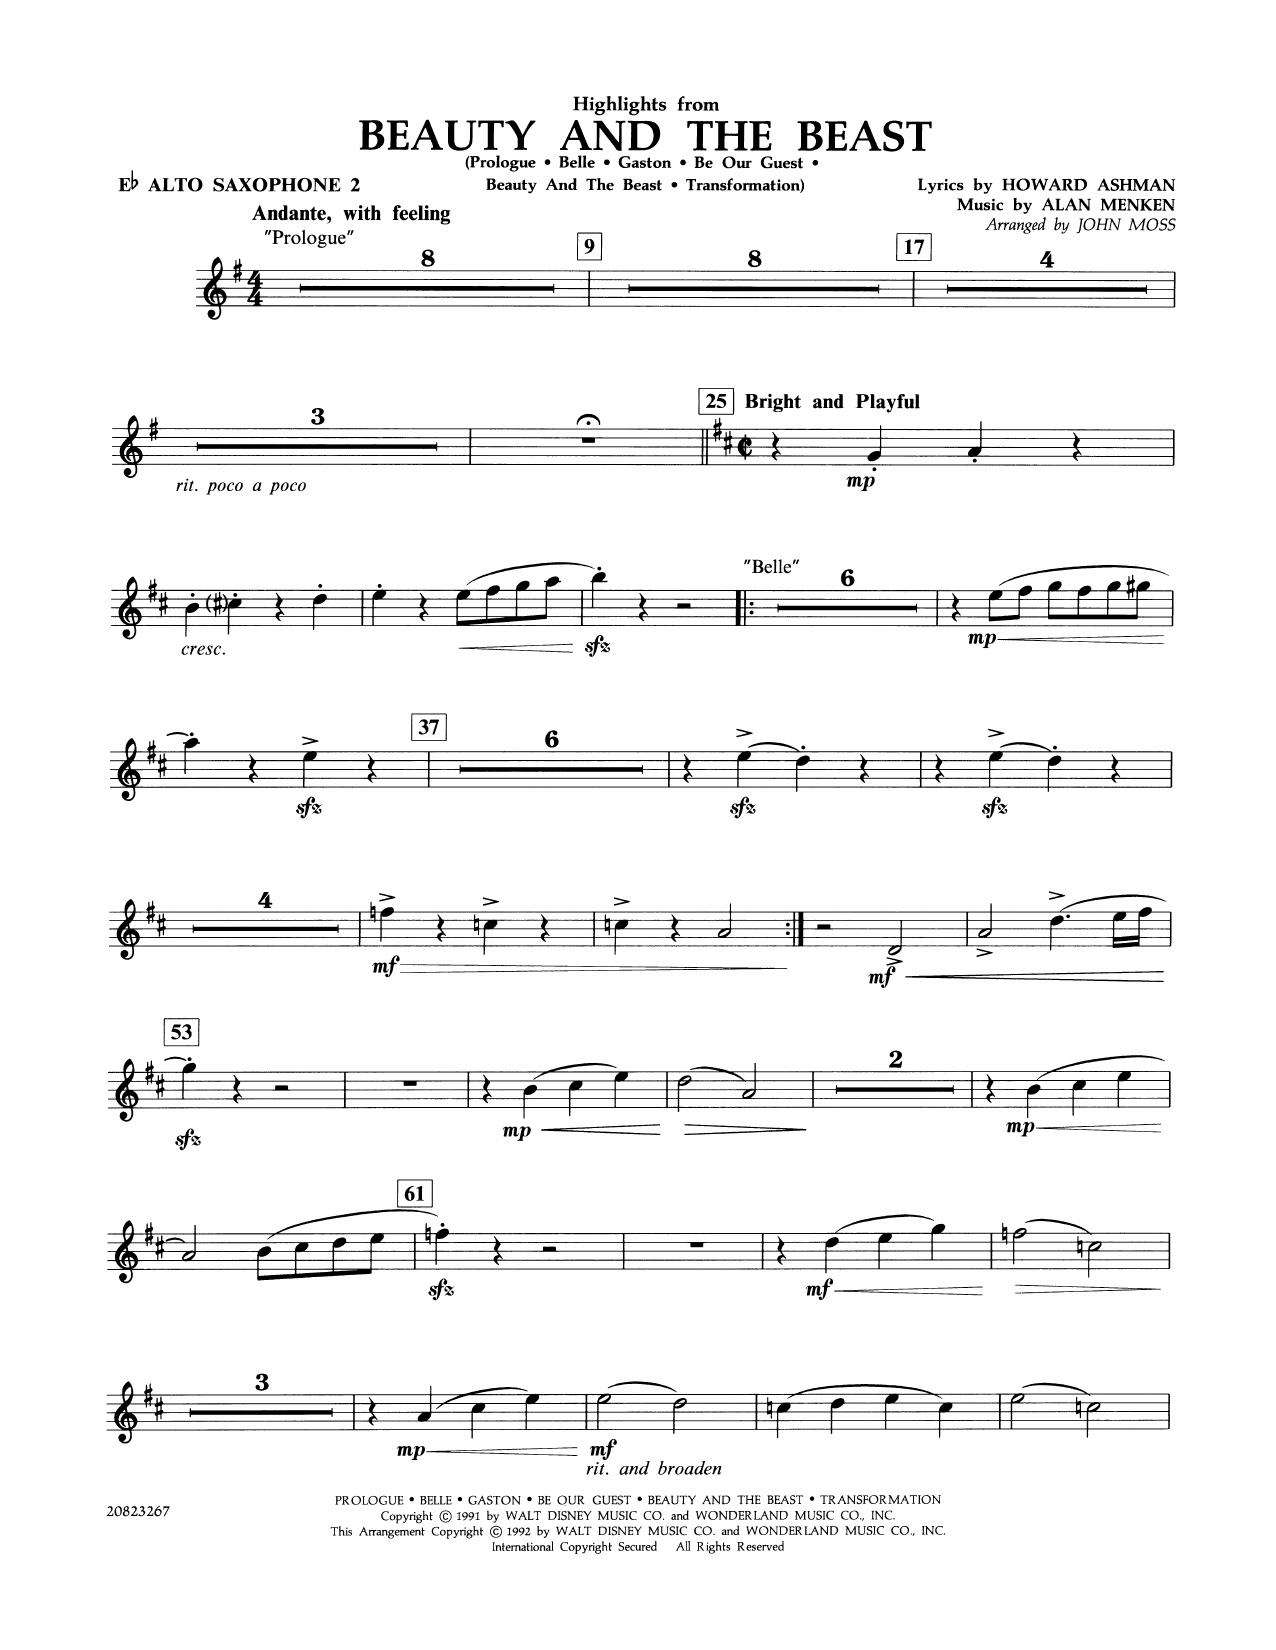 Highlights from Beauty and the Beast - Eb Alto Saxophone 2 Sheet Music